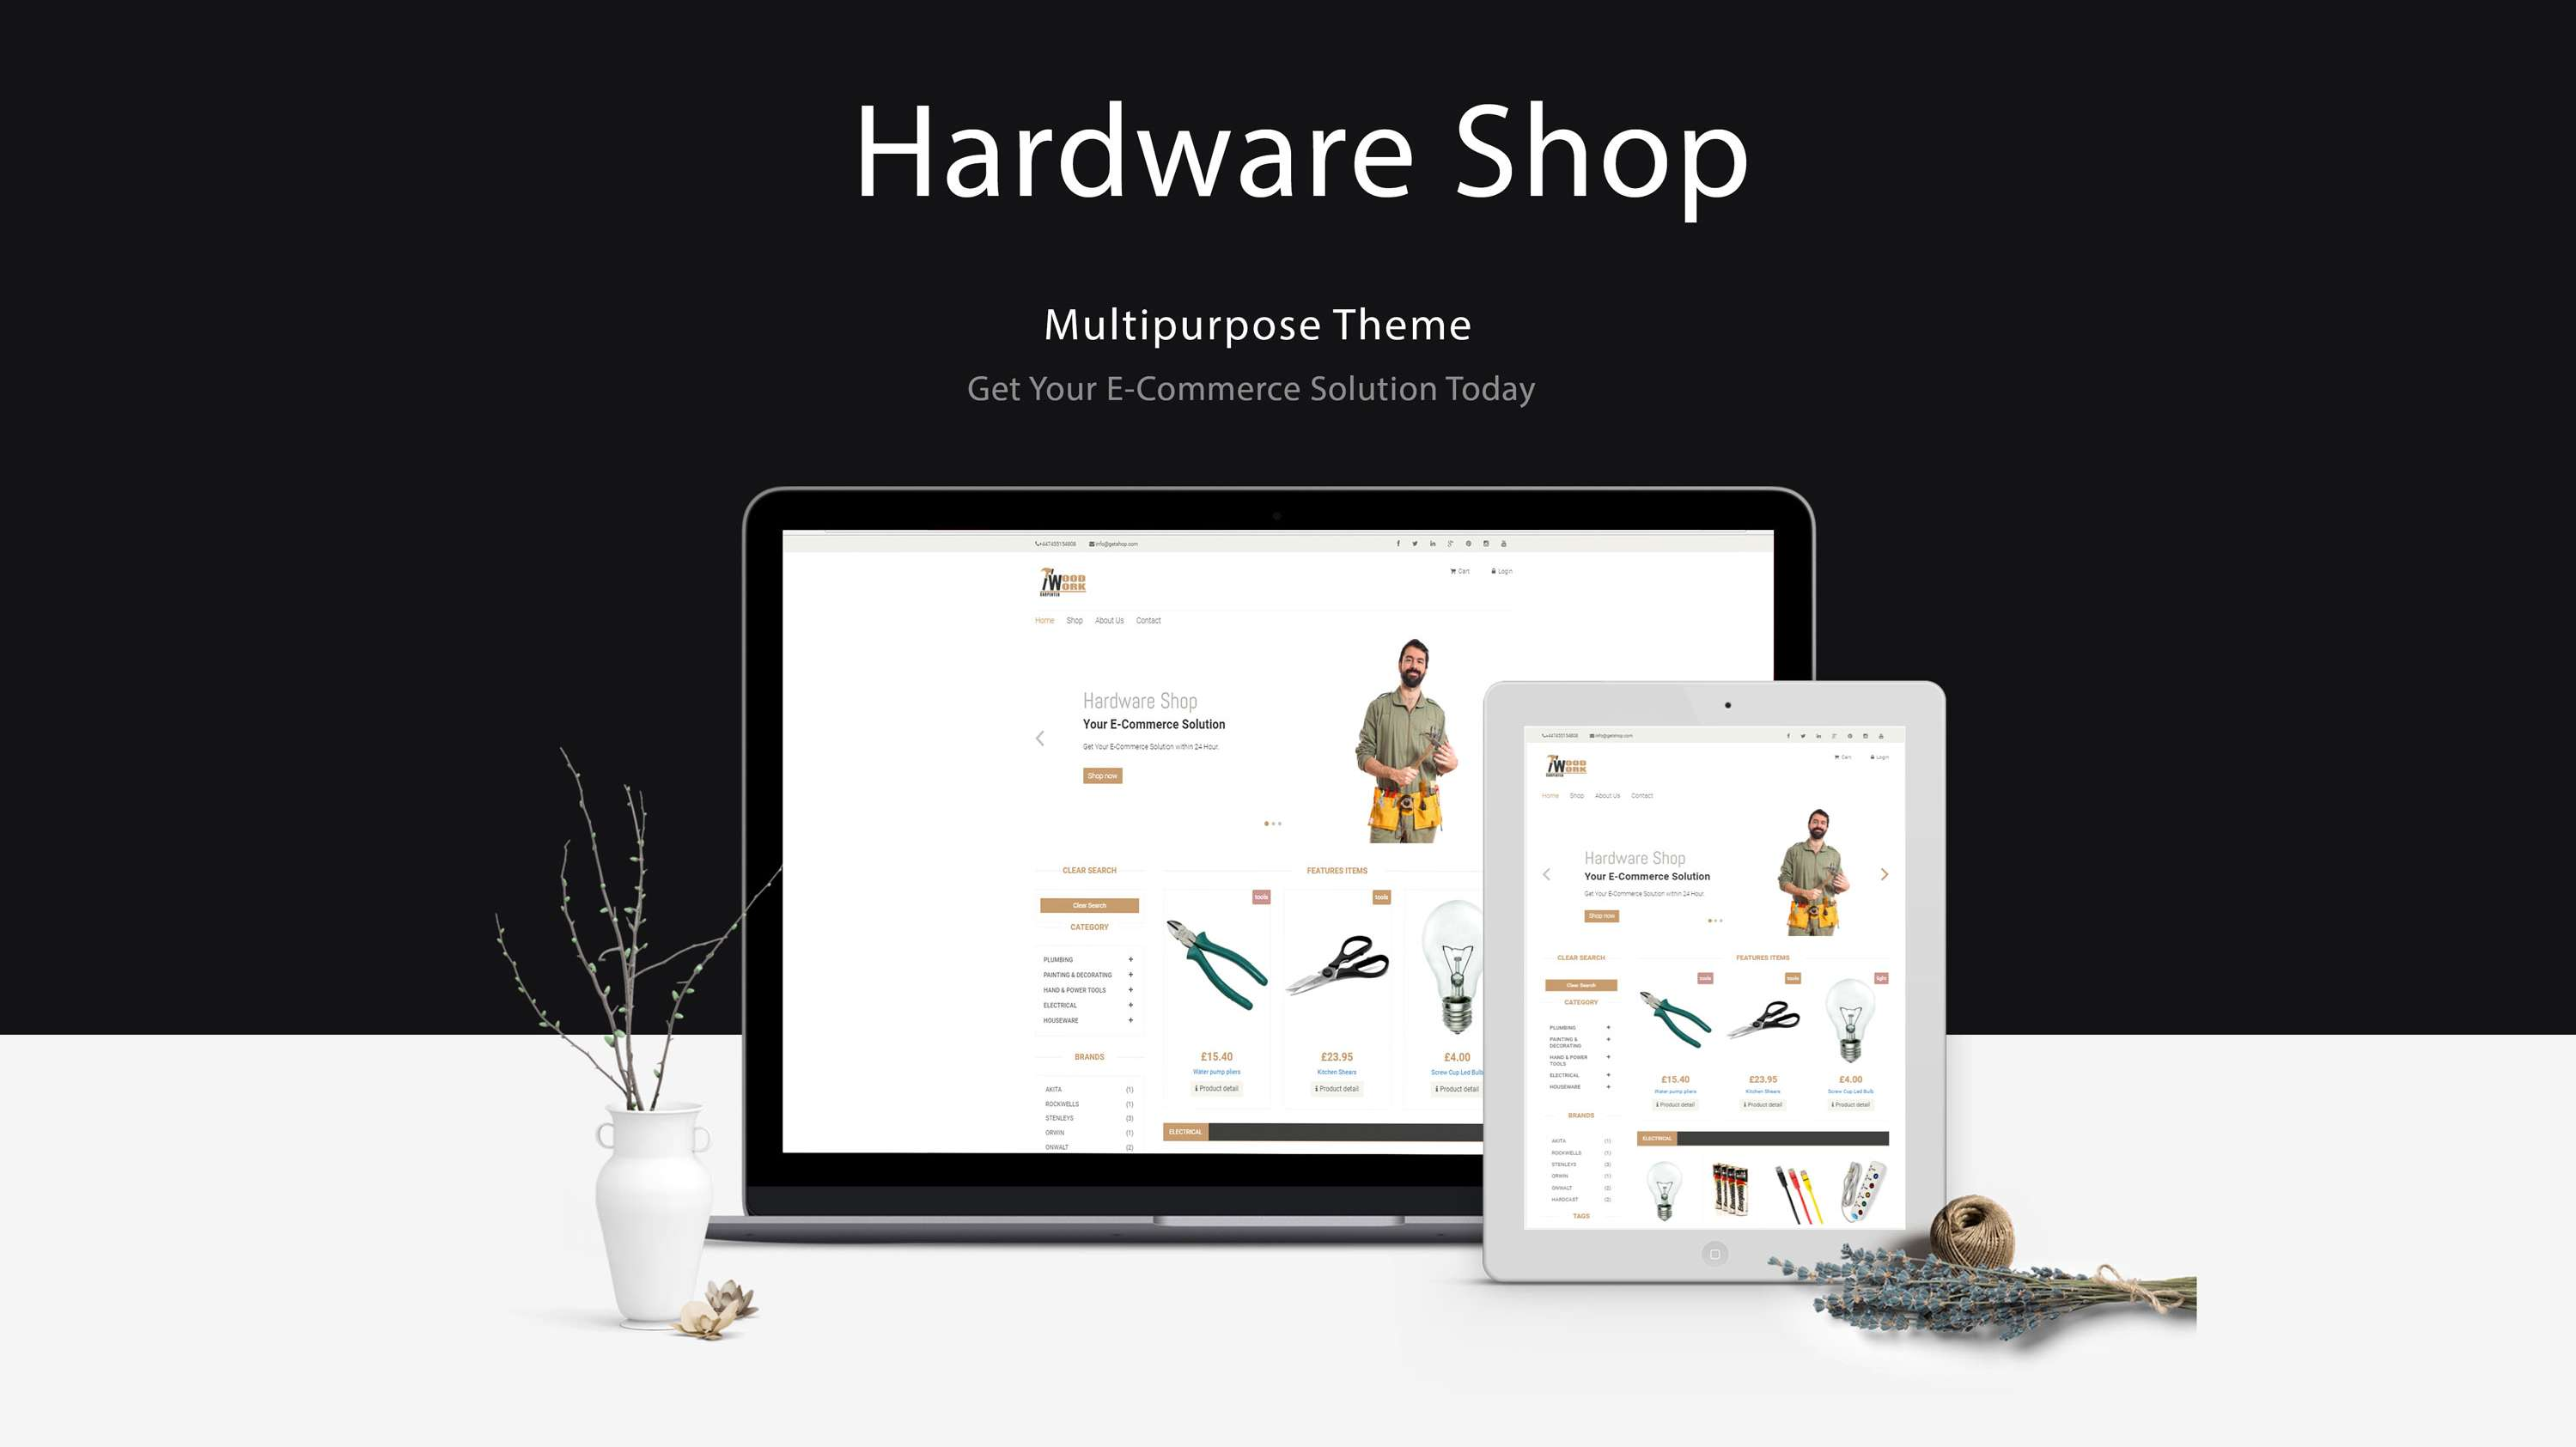 Getshop Today: E-commerce Software And Online Store Platform